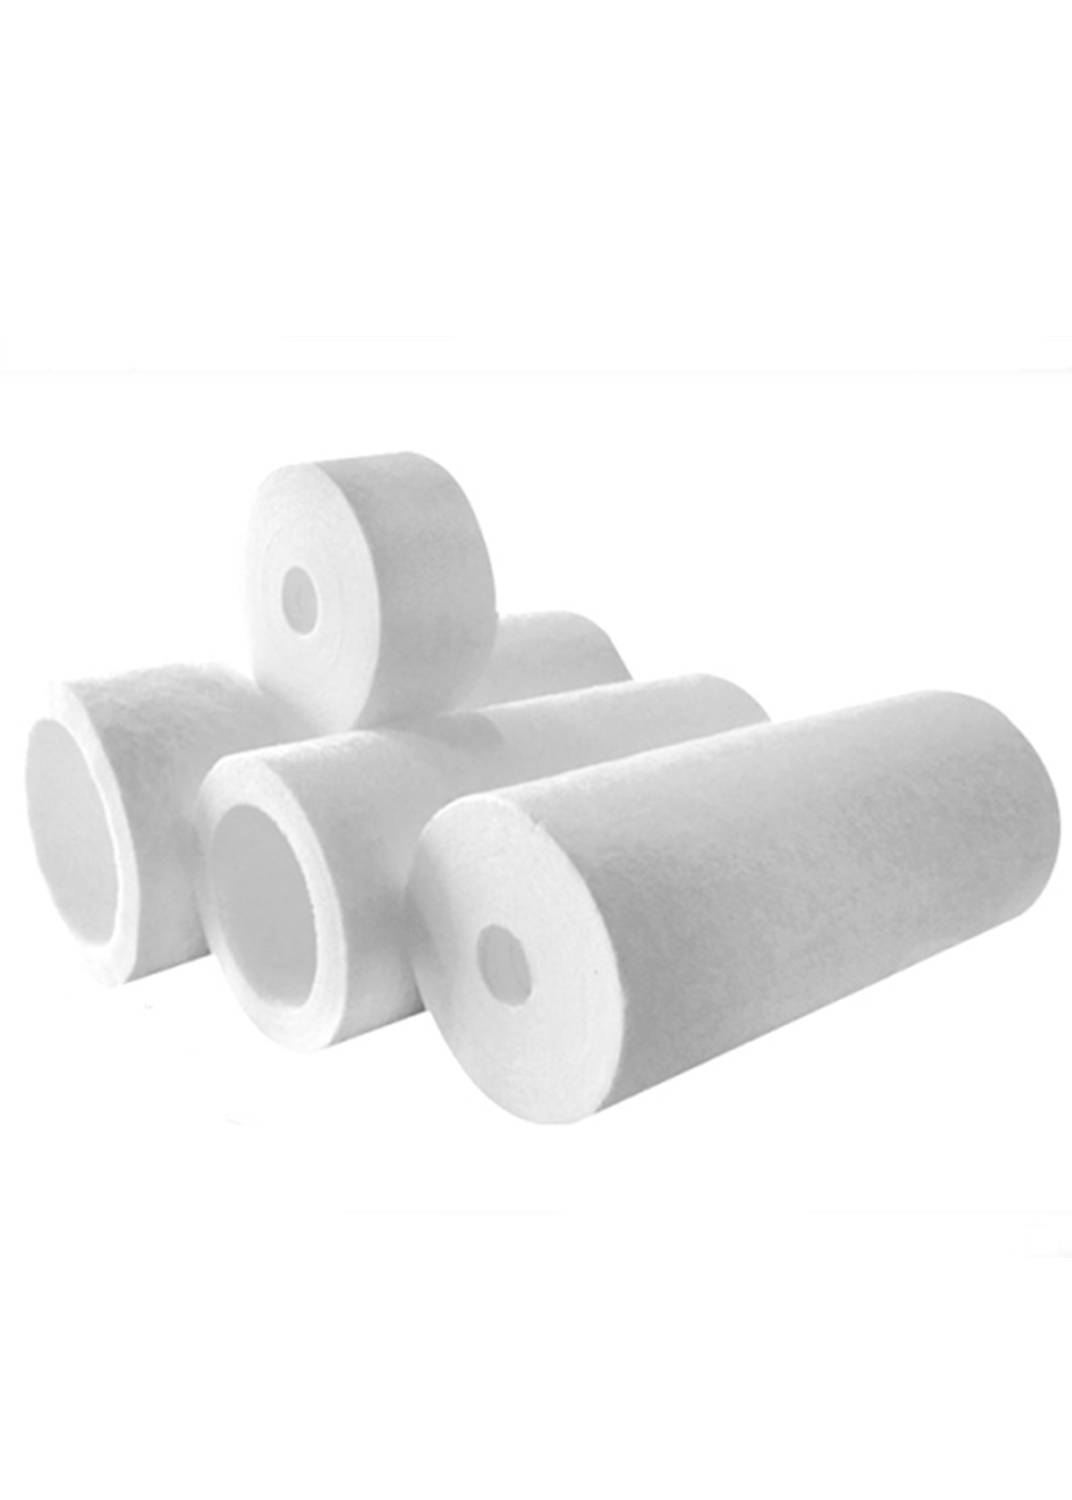 Why are PP melt blown filter cartridges so popular?cid=3